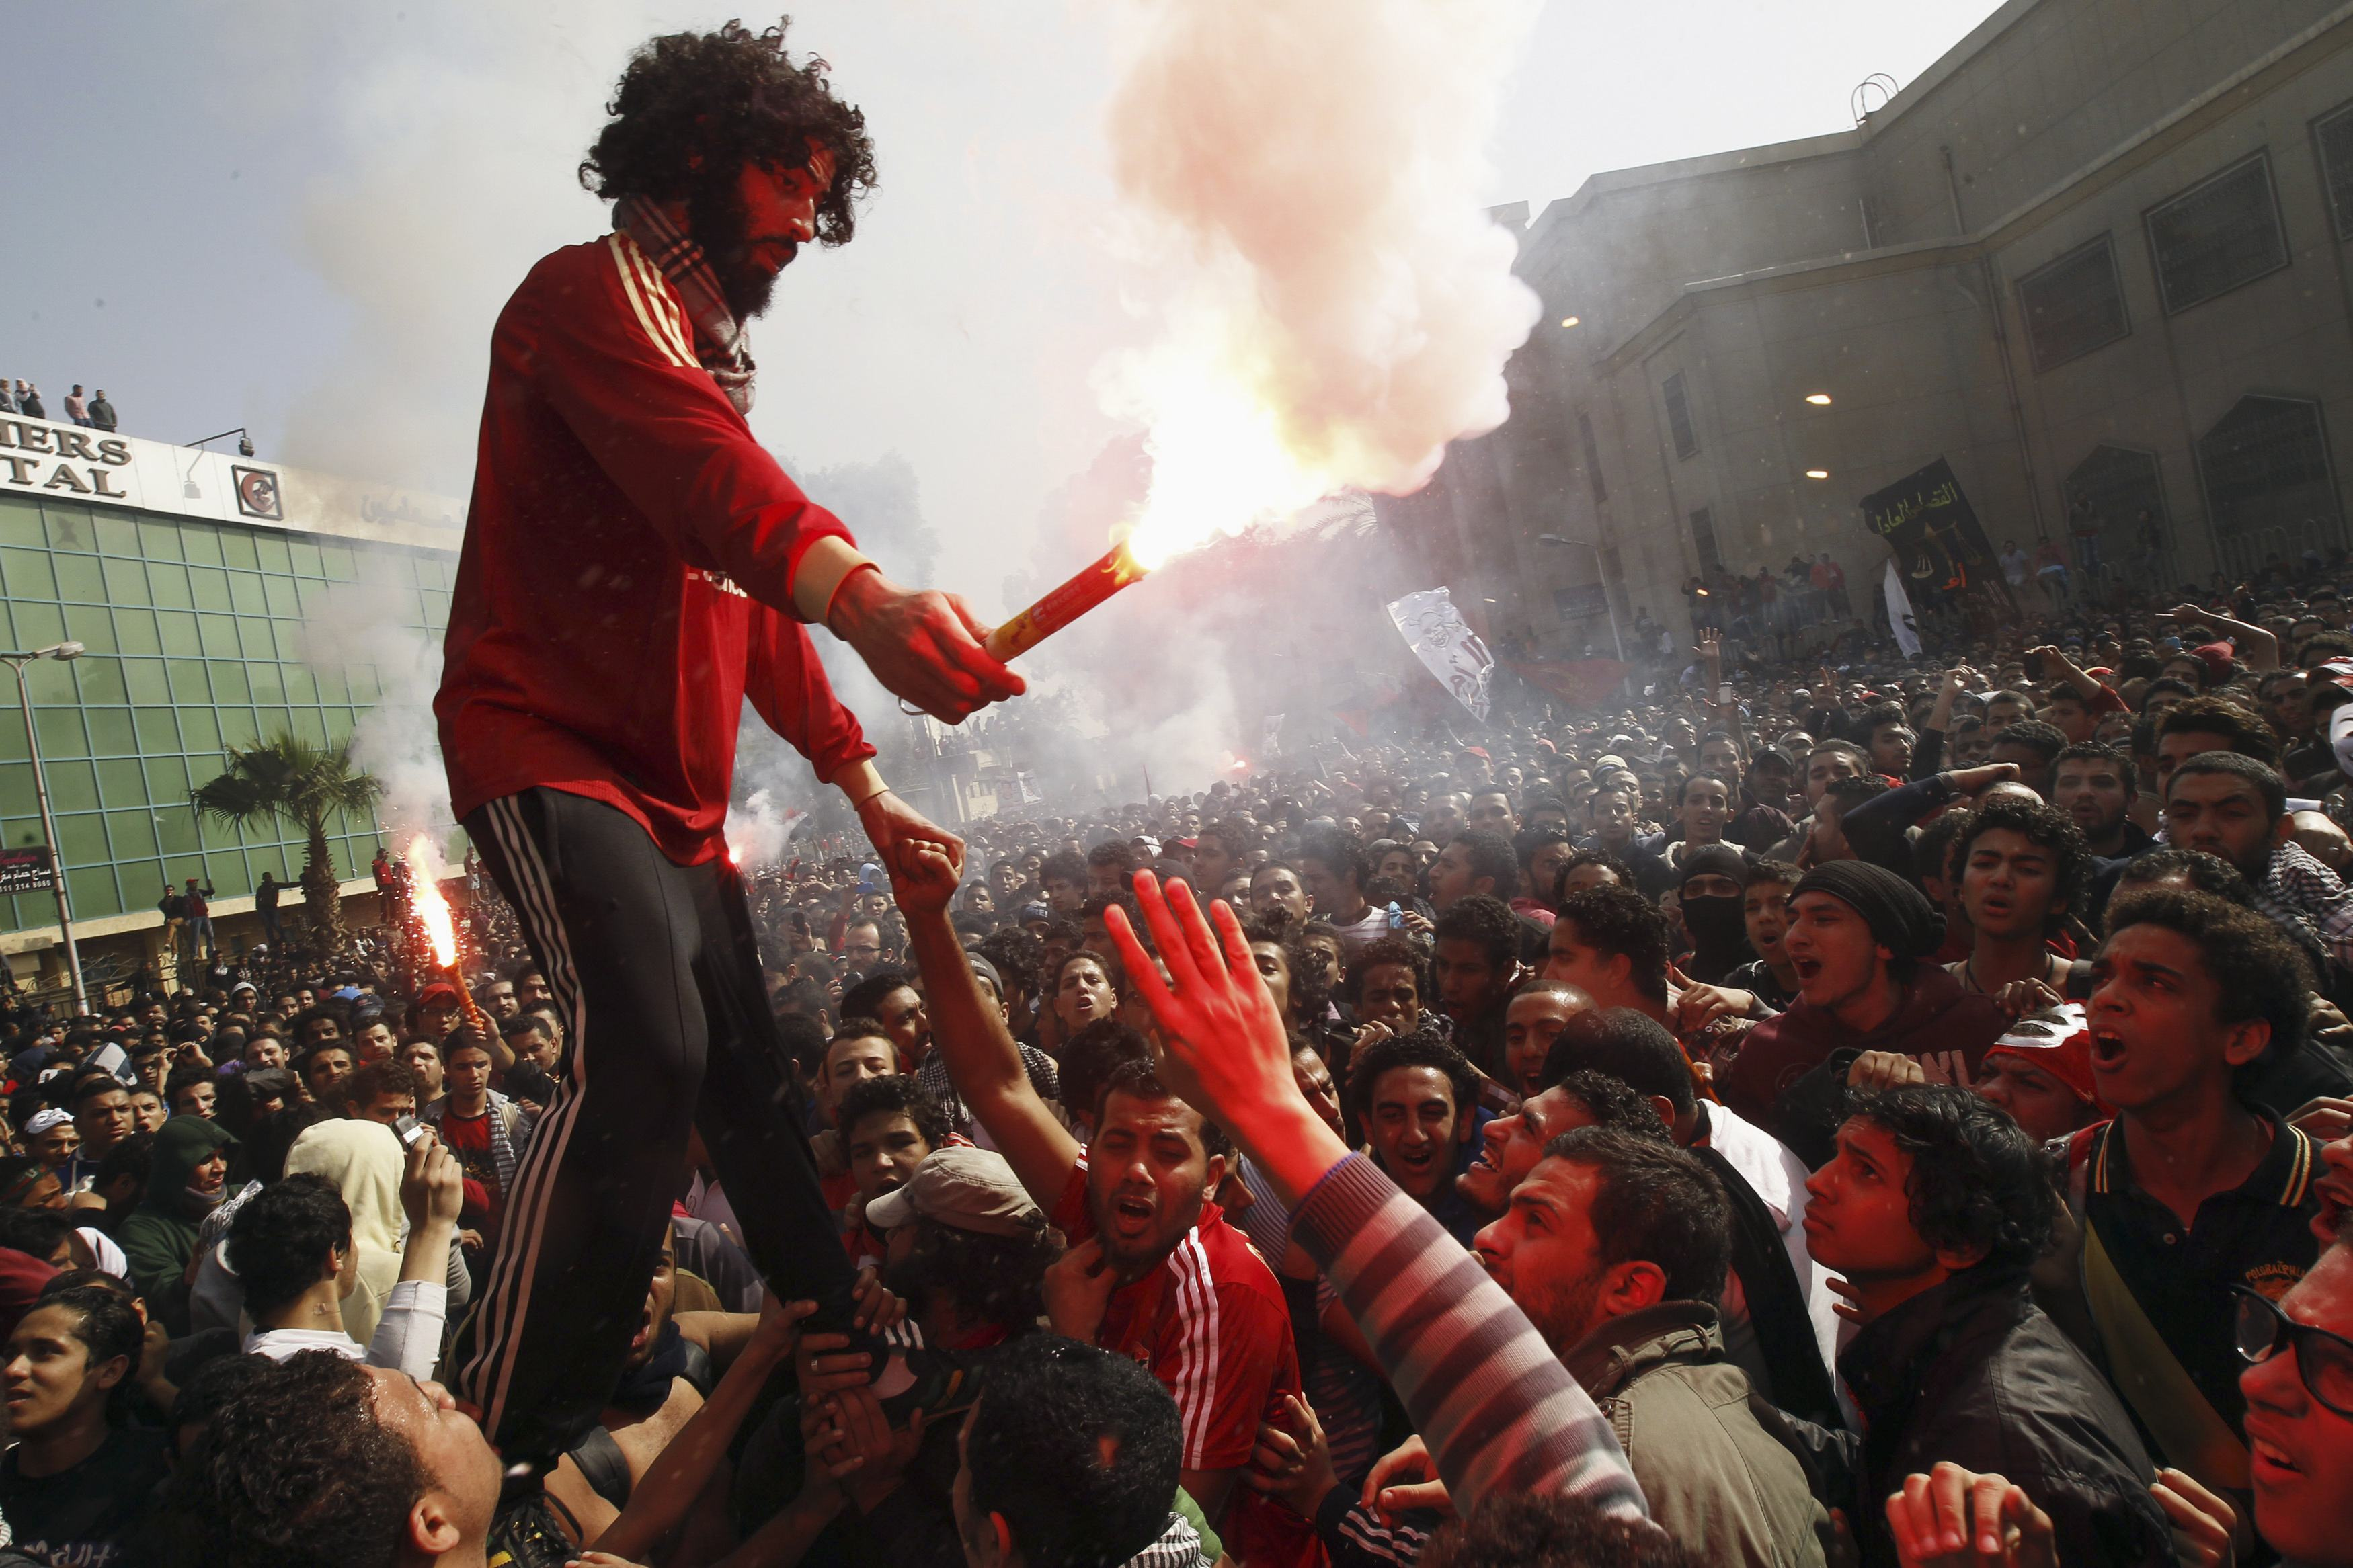 Update: Egyptian youths, police clash in fourth day of street violence